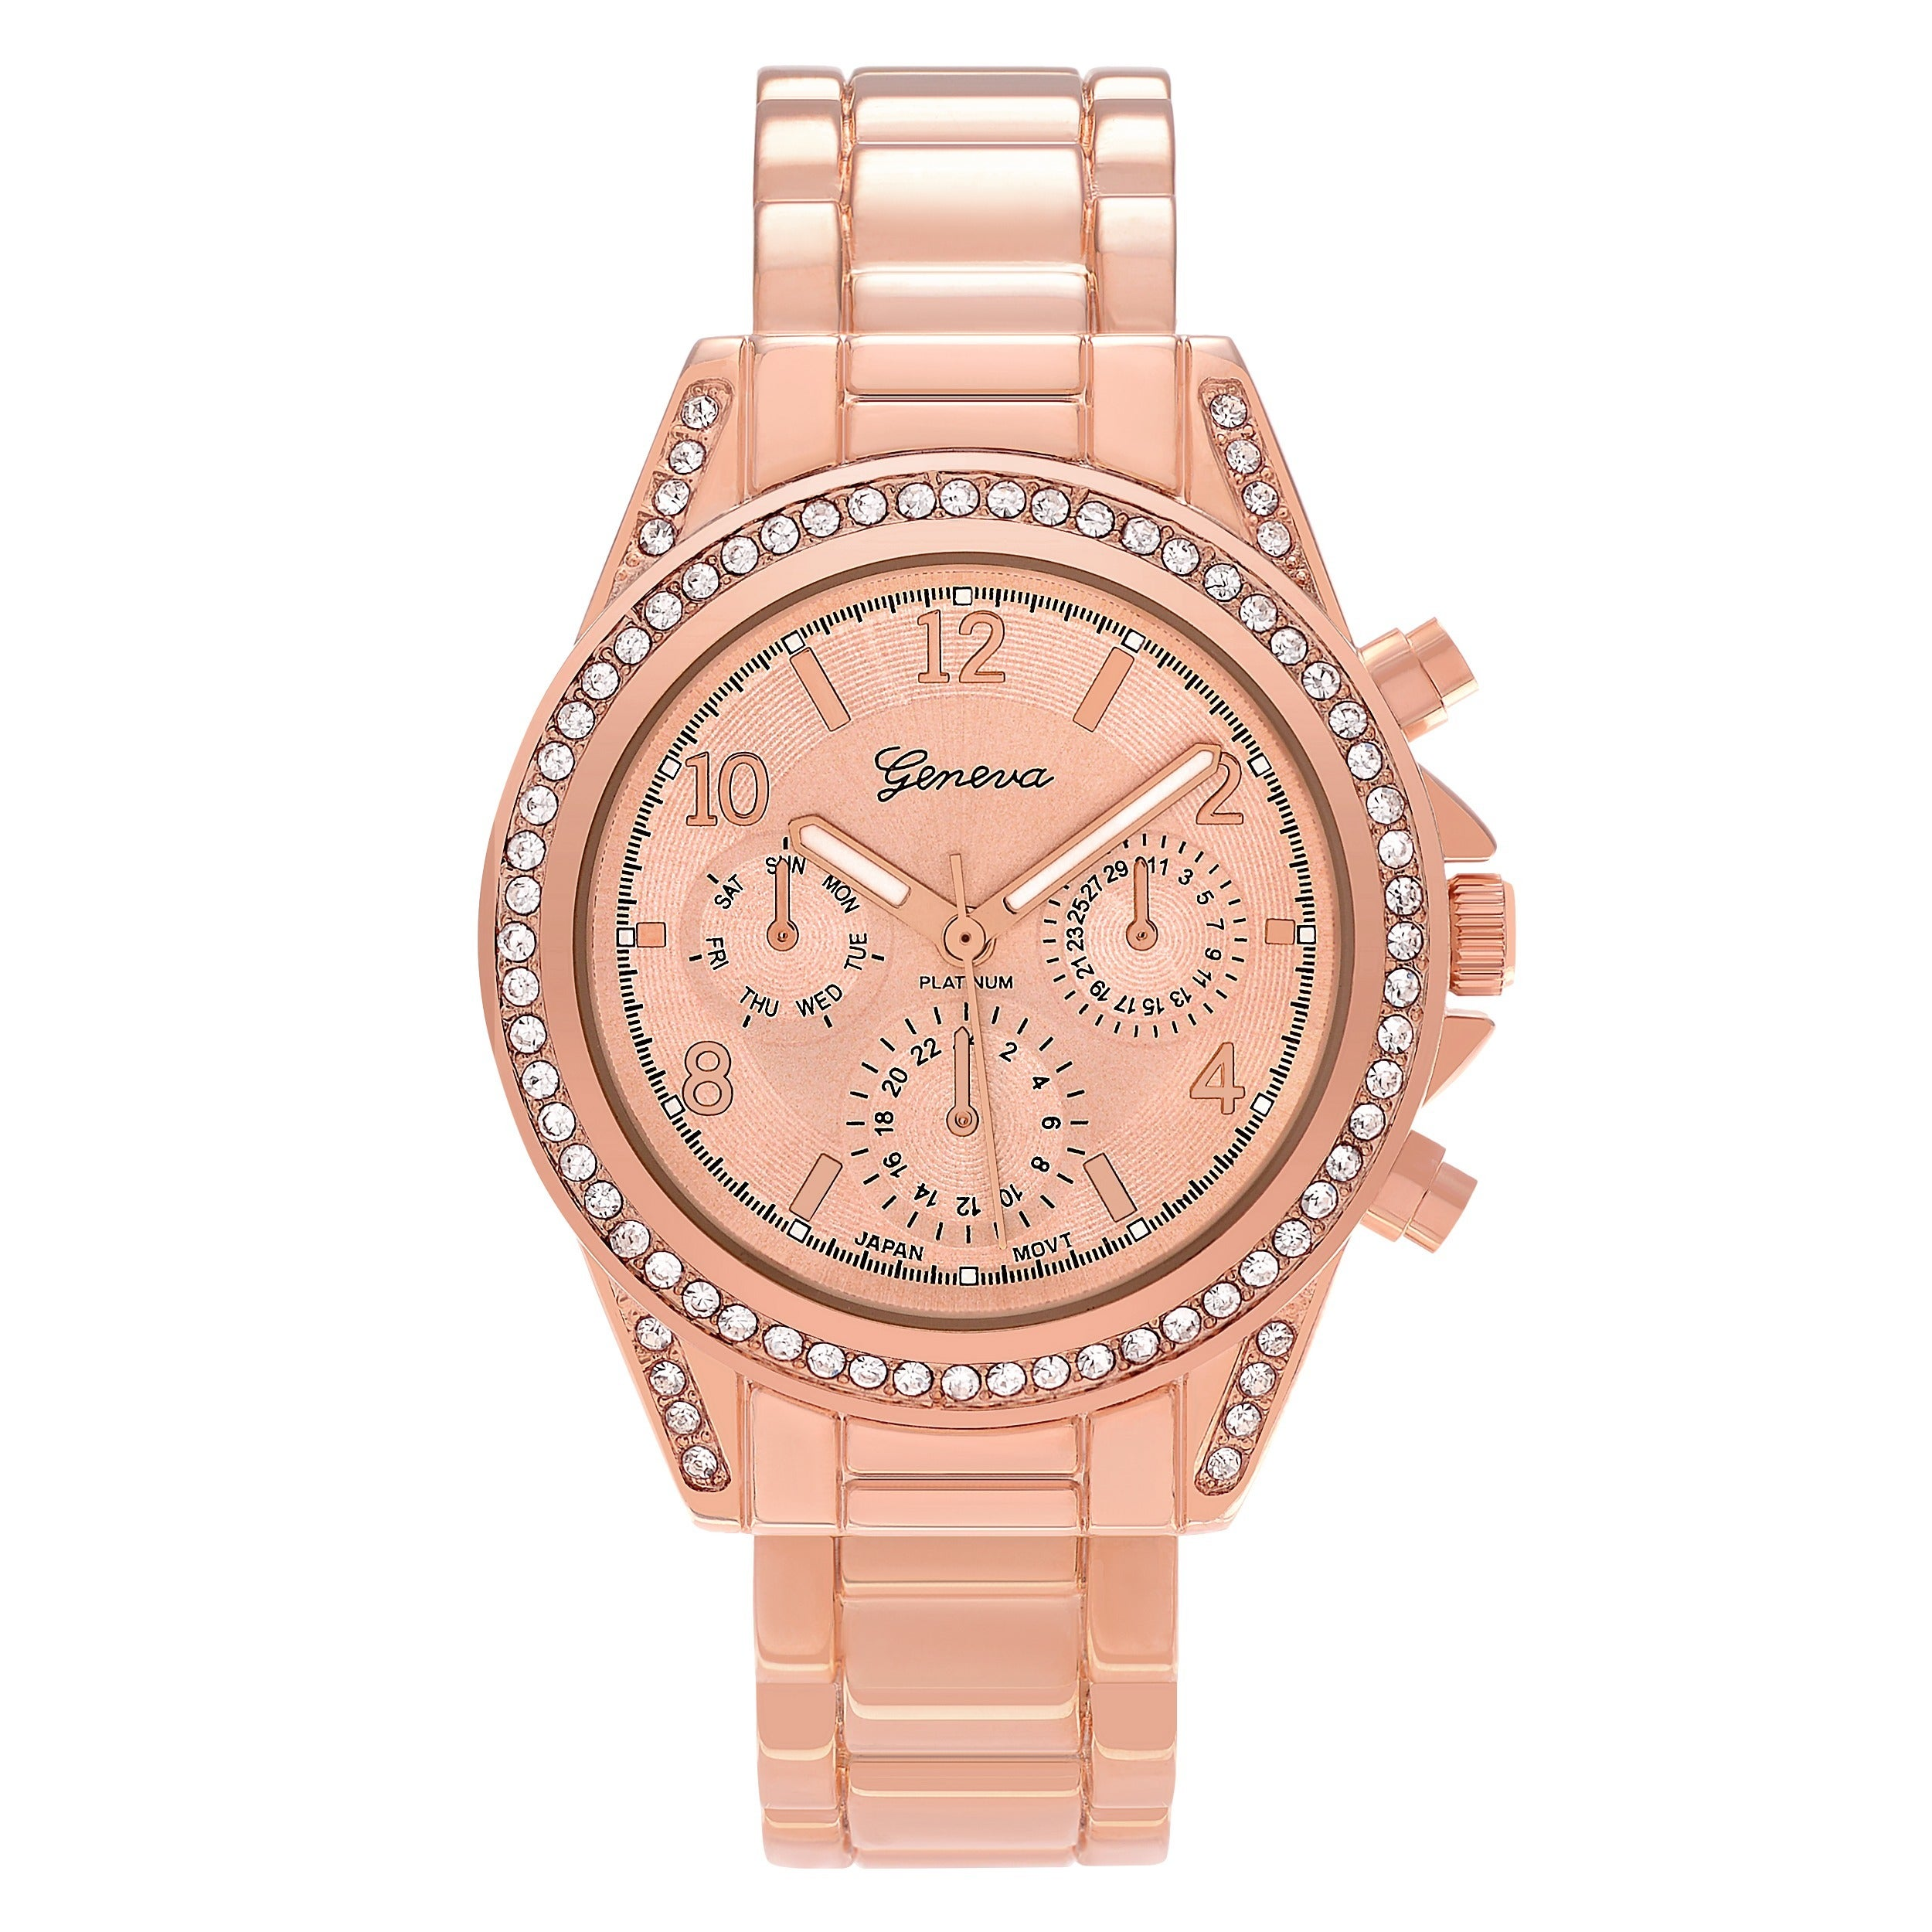 show strap olivia n b i daisy pinterest flower pin leather our s g from rose watches lewis range white john peach watch gold at nude burton women moulded l buy